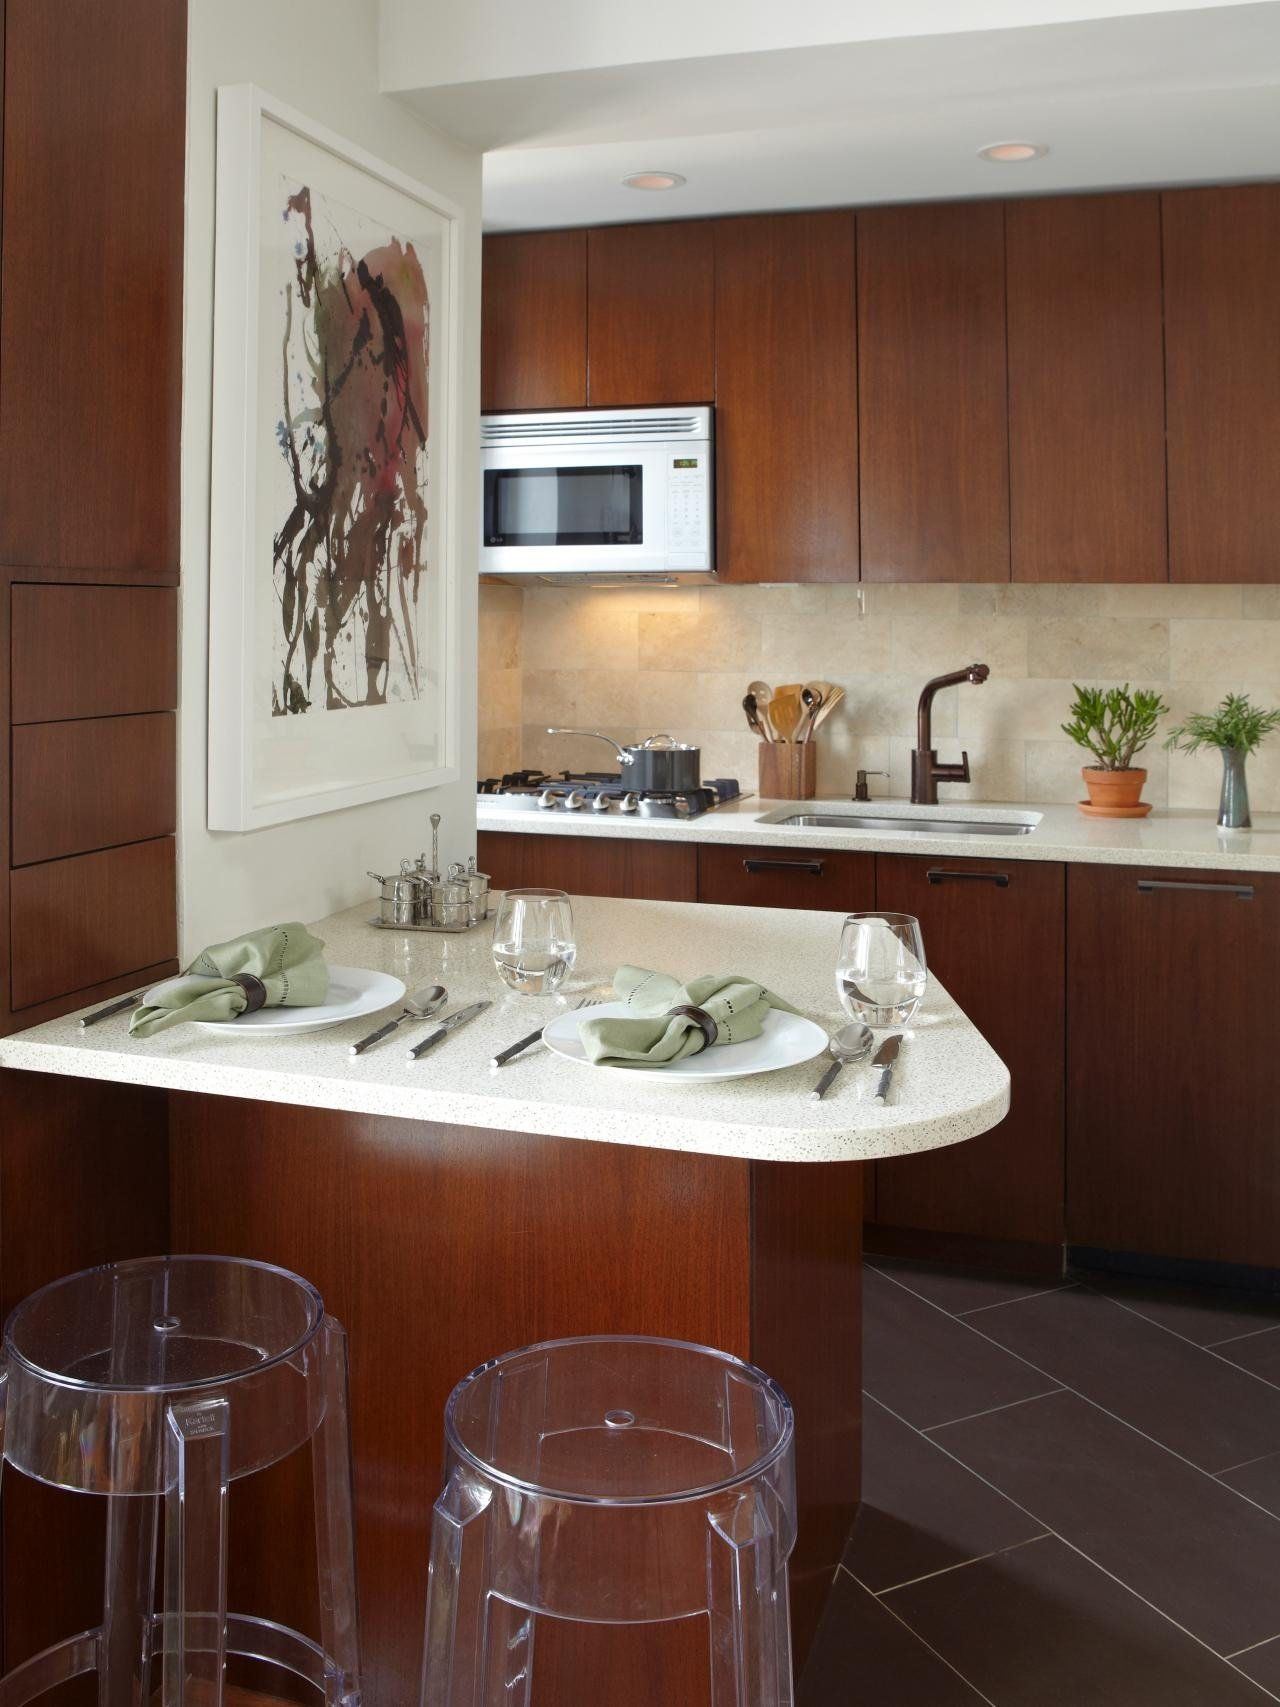 10 Ideal Kitchen Design Ideas For Small Kitchens kithen design ideas foxy small kitchen remodeling with gas range 2020